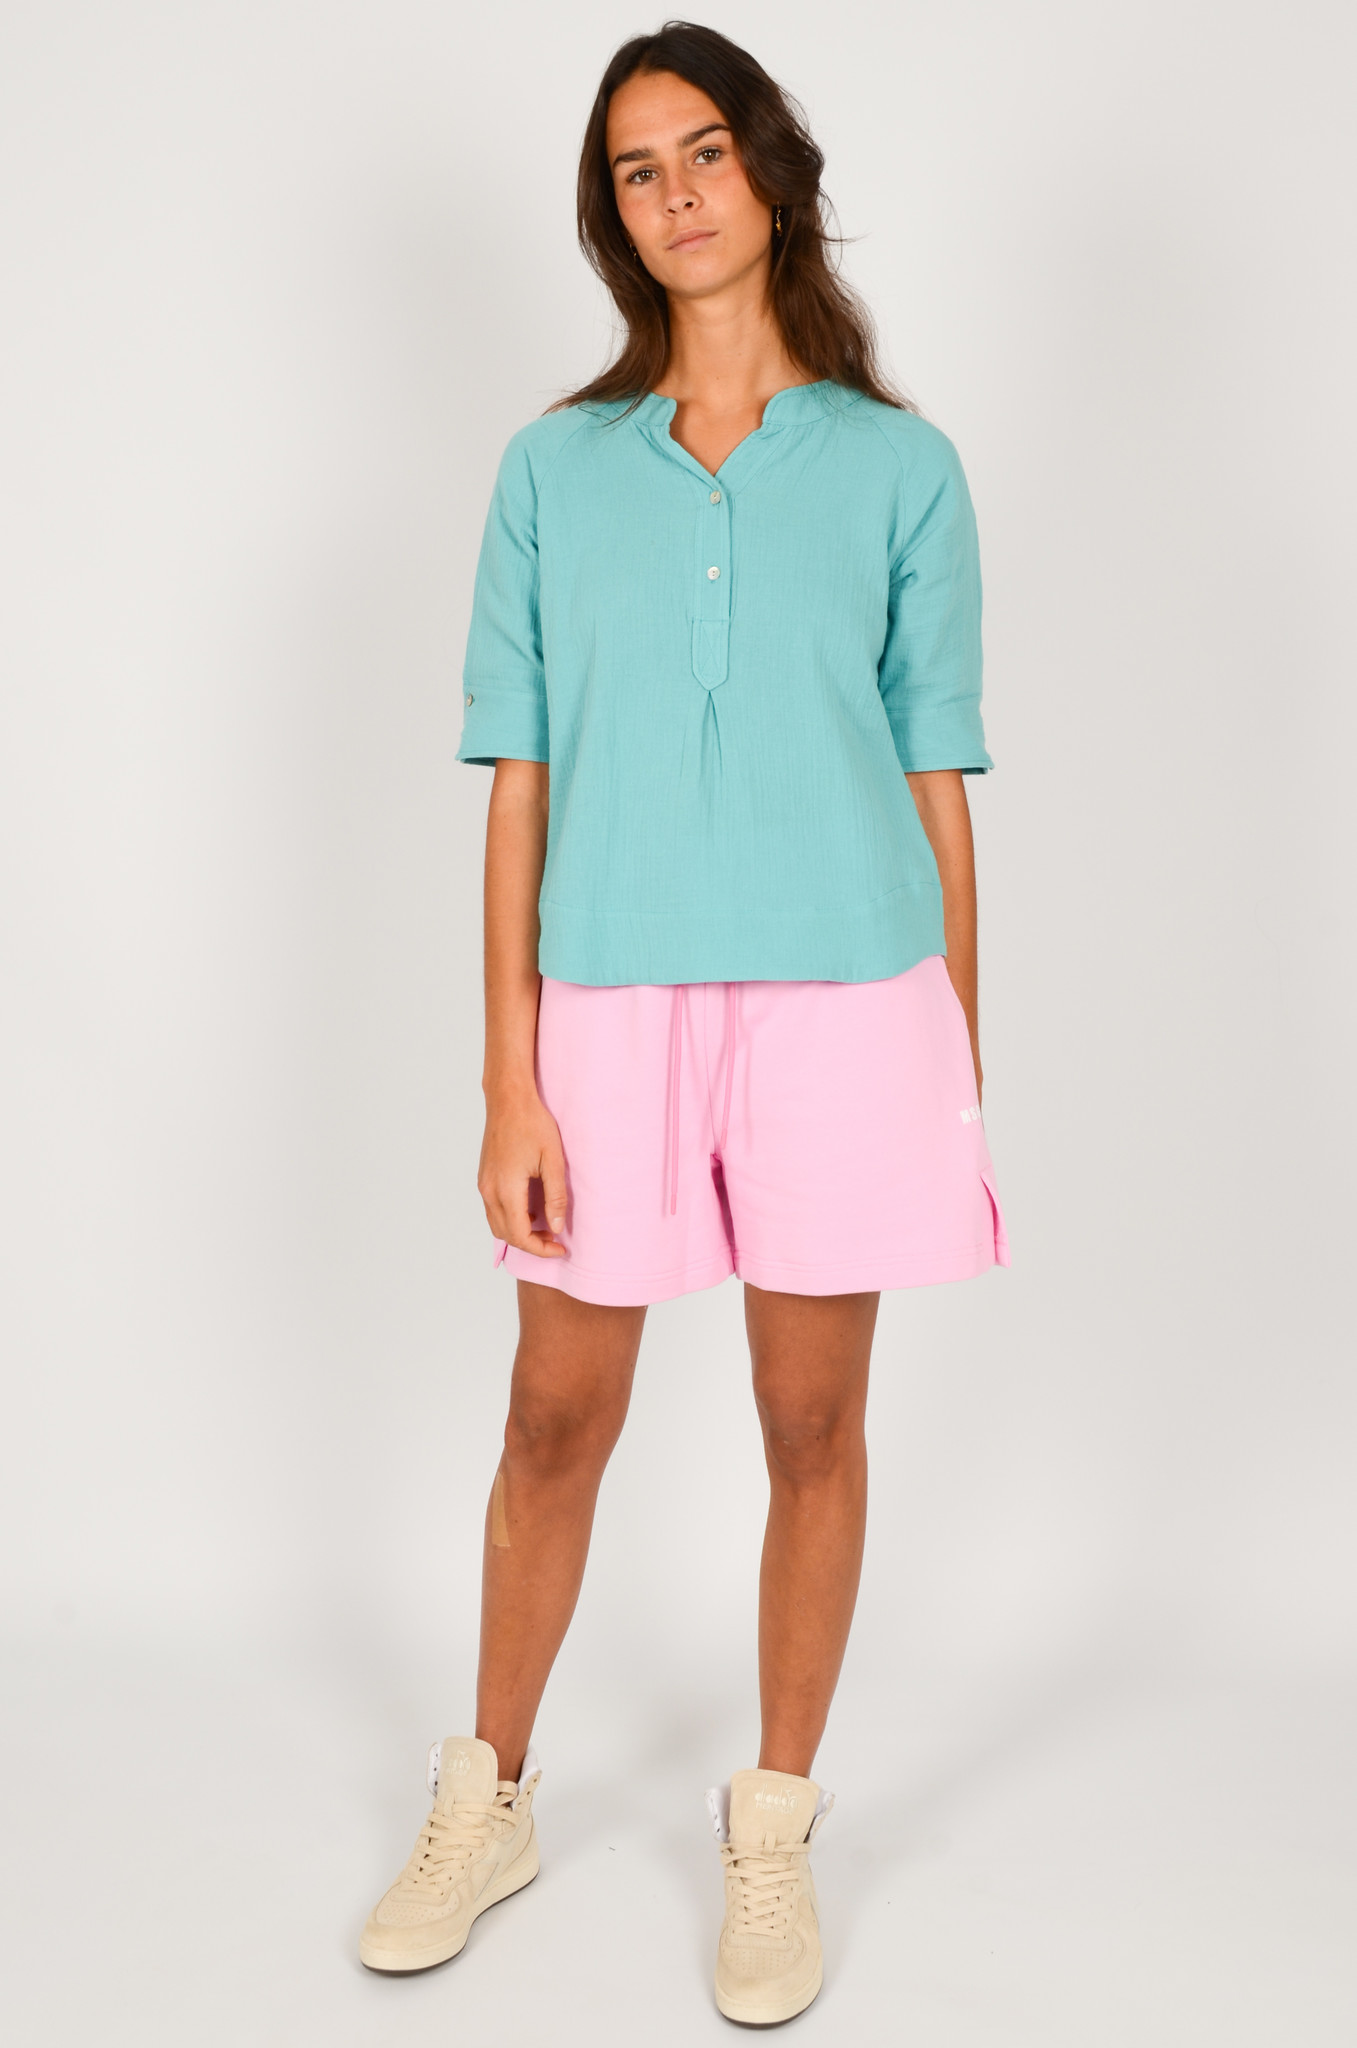 SWEAT SHORTS IN PINK-5